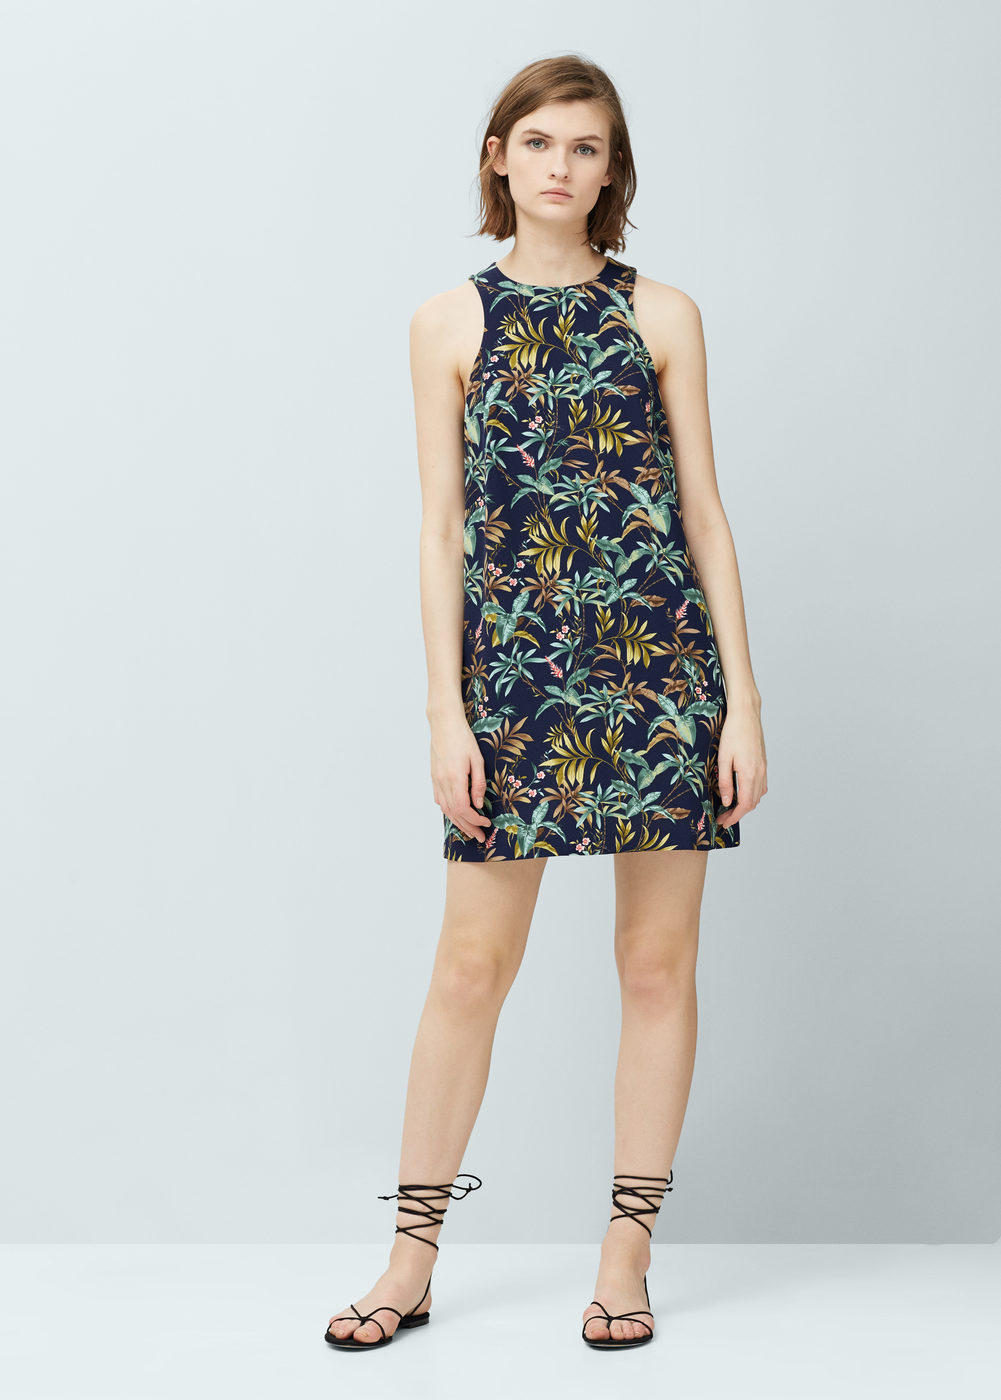 30% Off Memorial Day Sale @ Mango